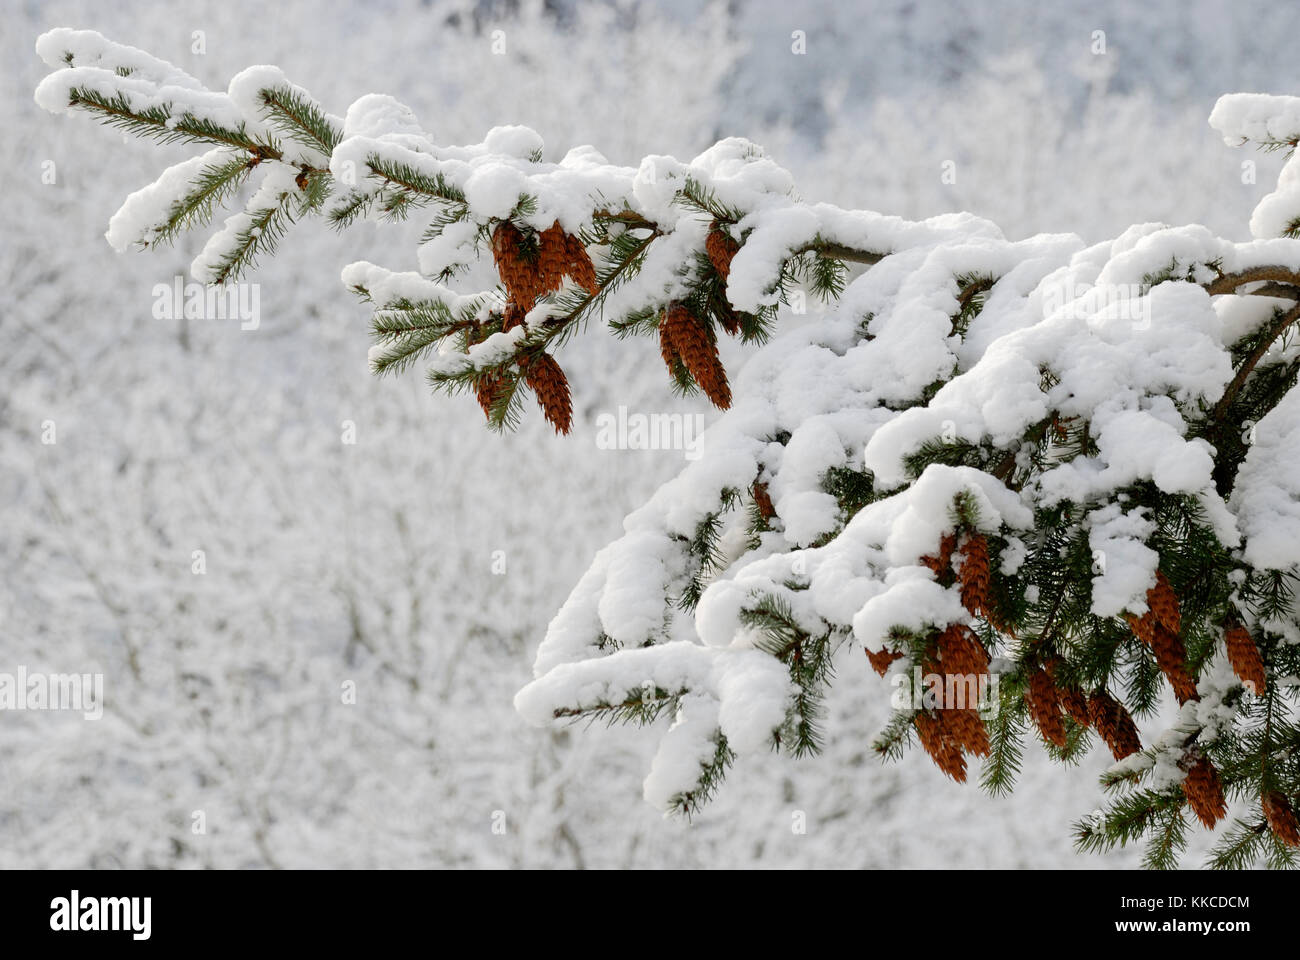 Cones of Douglas Fir, Pseudotsuga menziesii, in snow, Wales, UK. - Stock Image